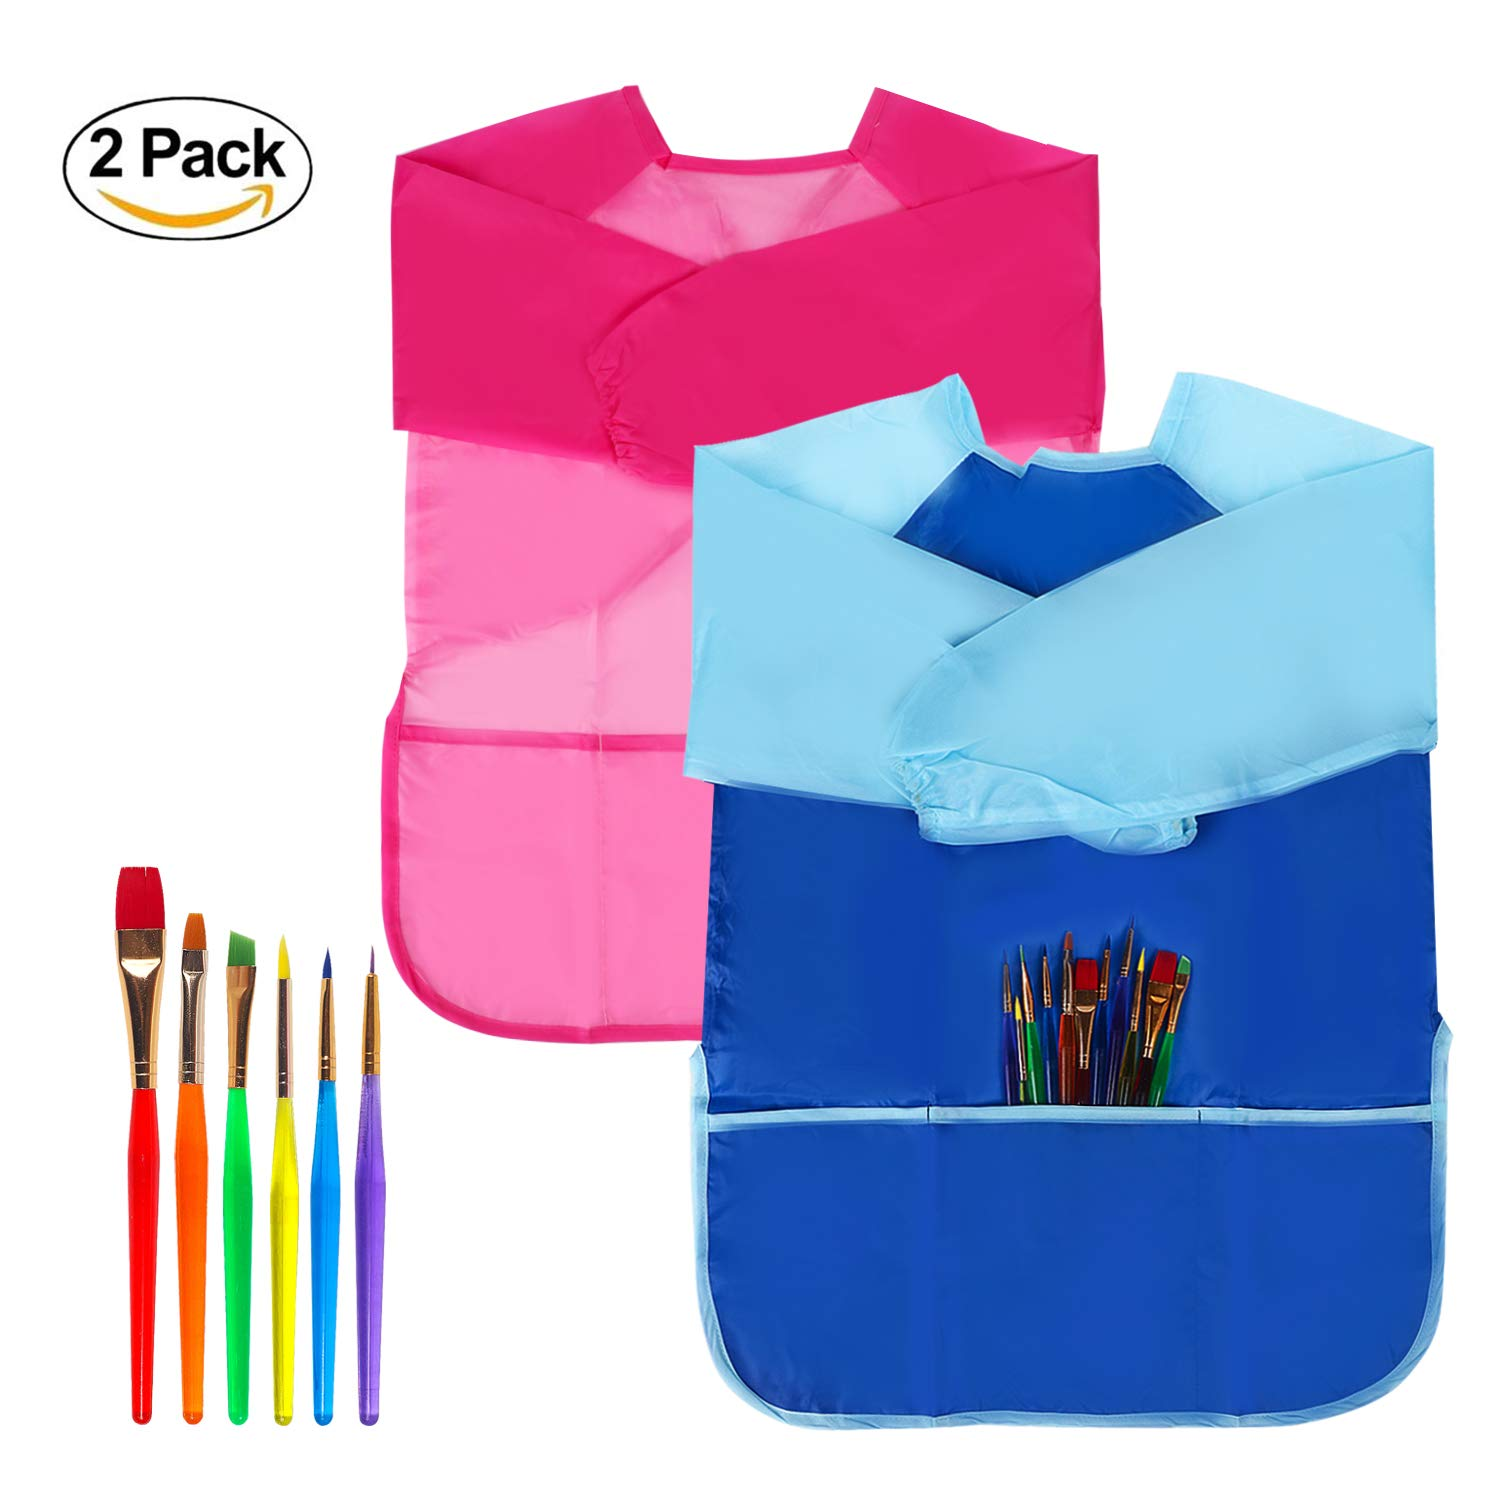 USHF 2 Pack Kids Art Smock, Children Waterproof Artist Painting Aprons with 6 Paint Brushes - Long Sleeve - 3 Roomy Pockets - for Art, Craft, Cooking, Lab Activity - Ages 2-6